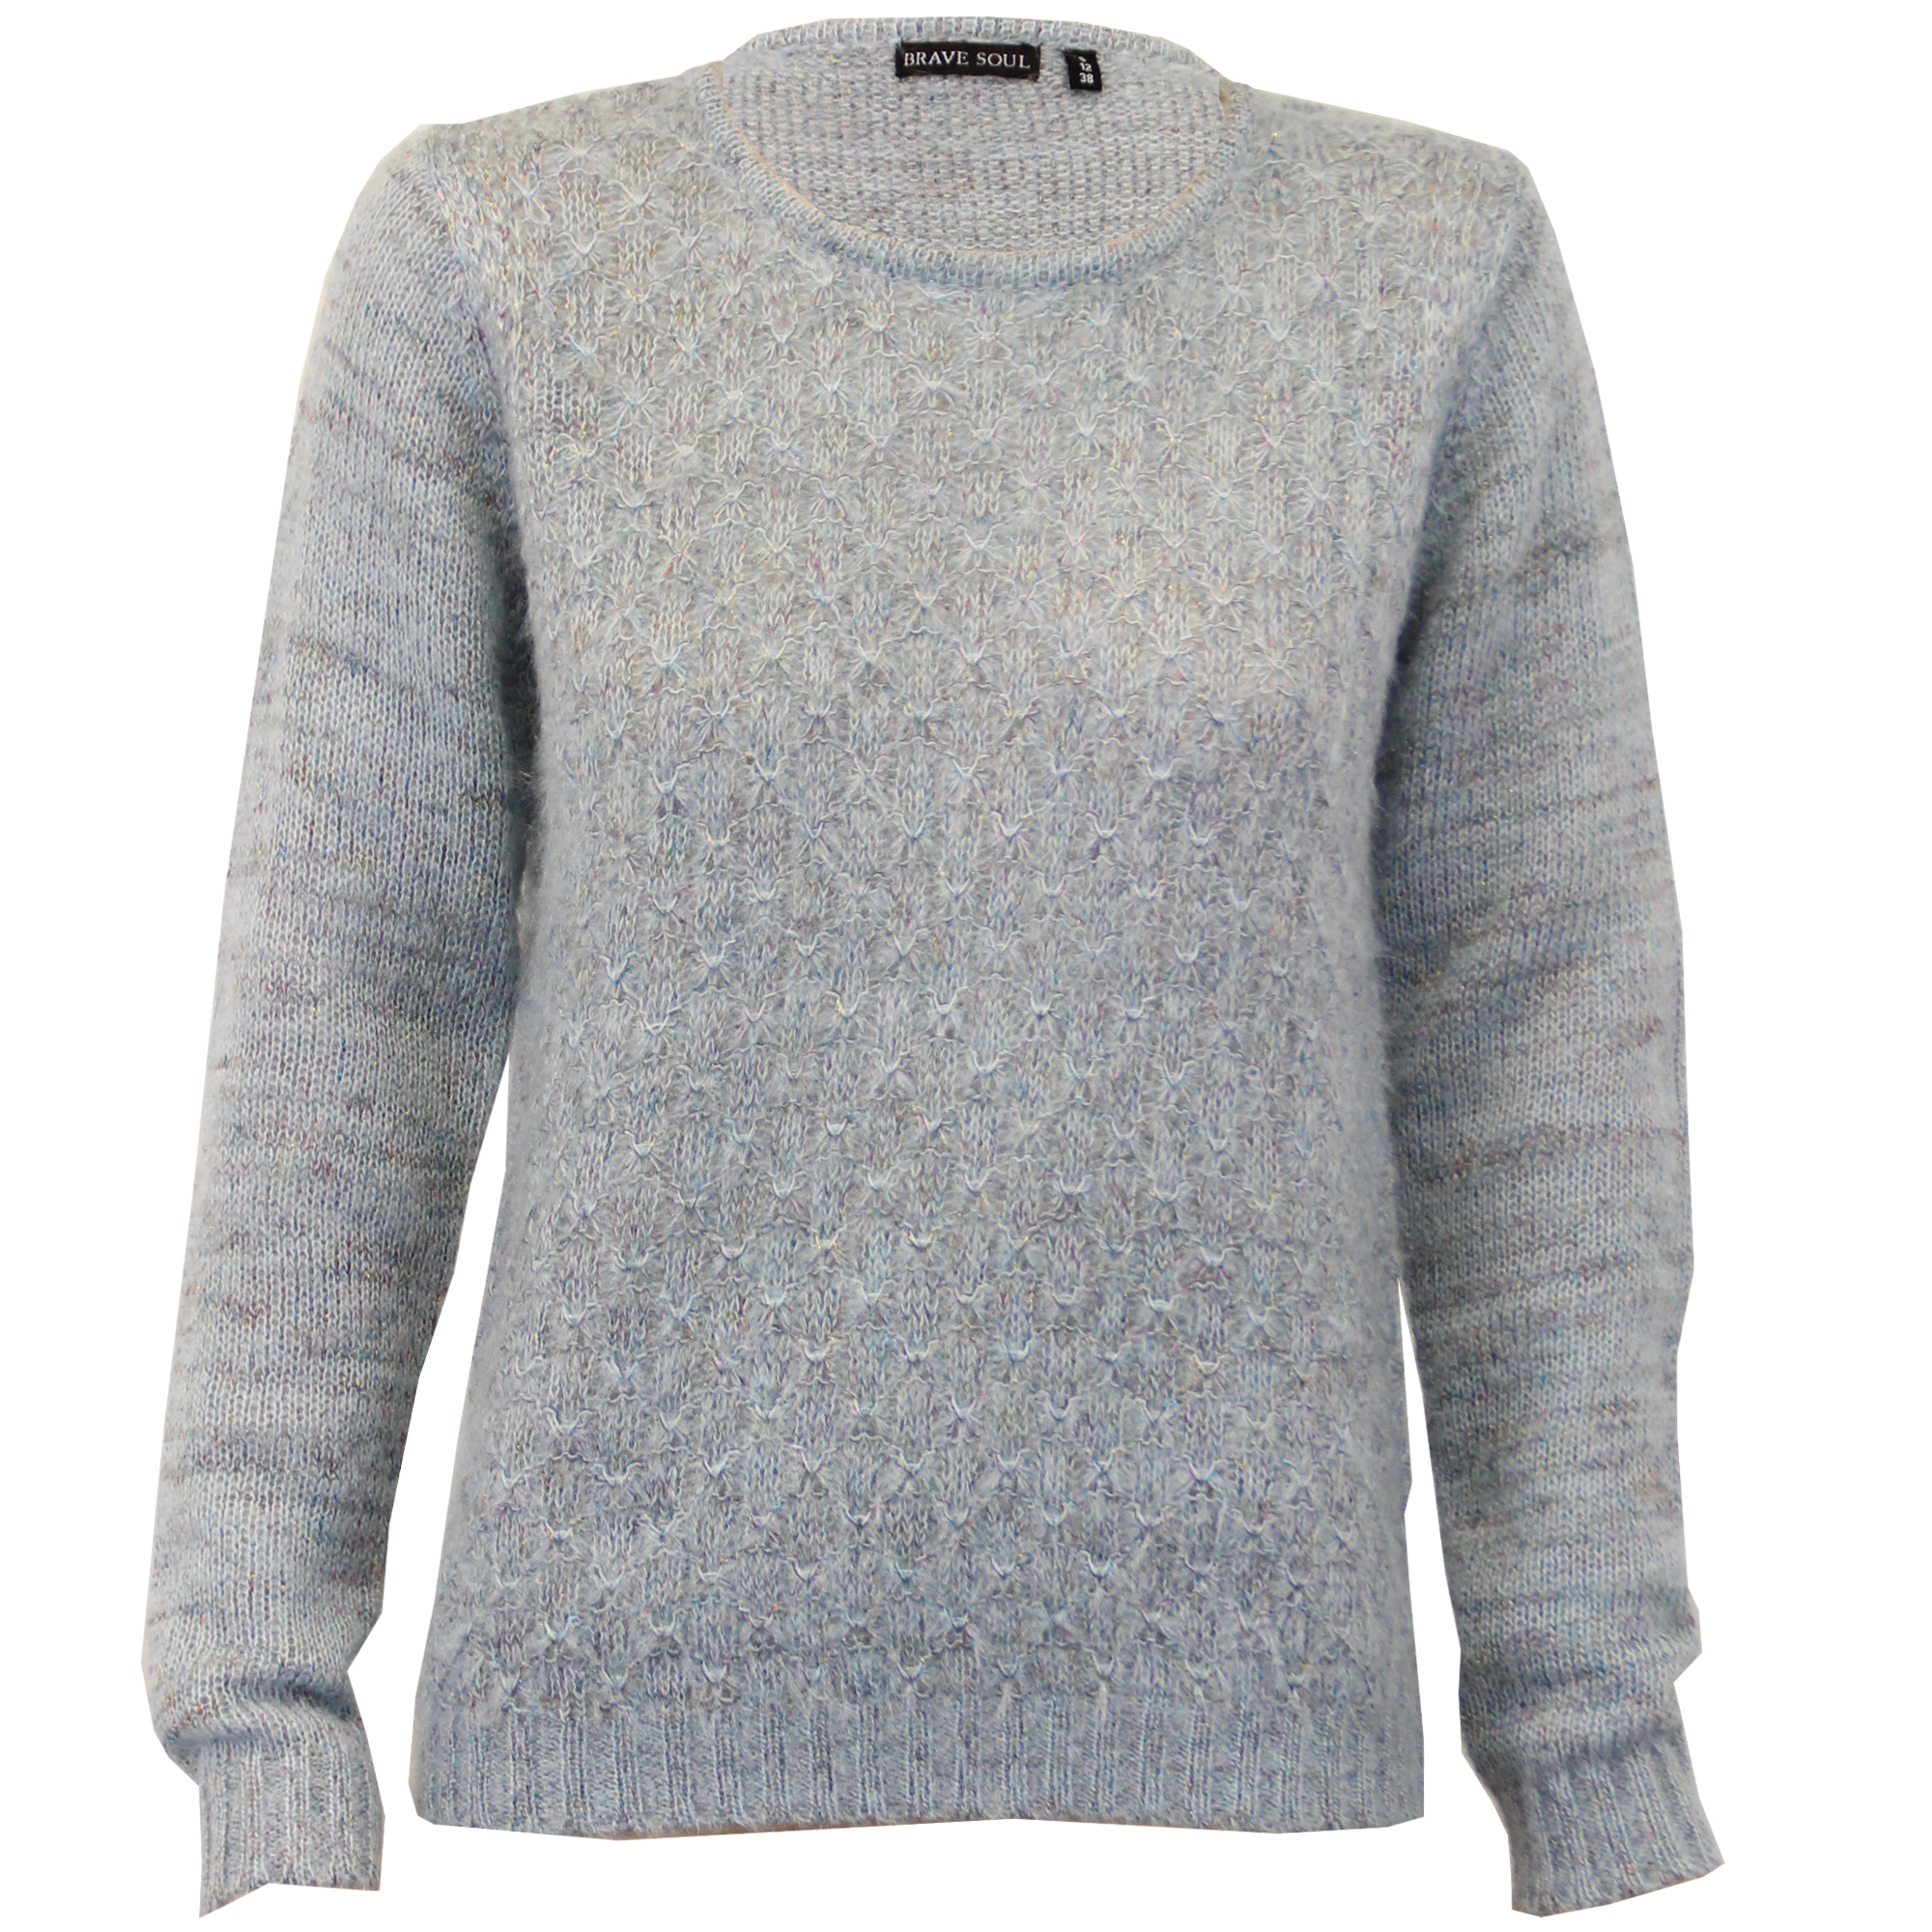 Ladies Mohair Jumper Brave Soul Womens Knitted Sweater Crew Neck ...